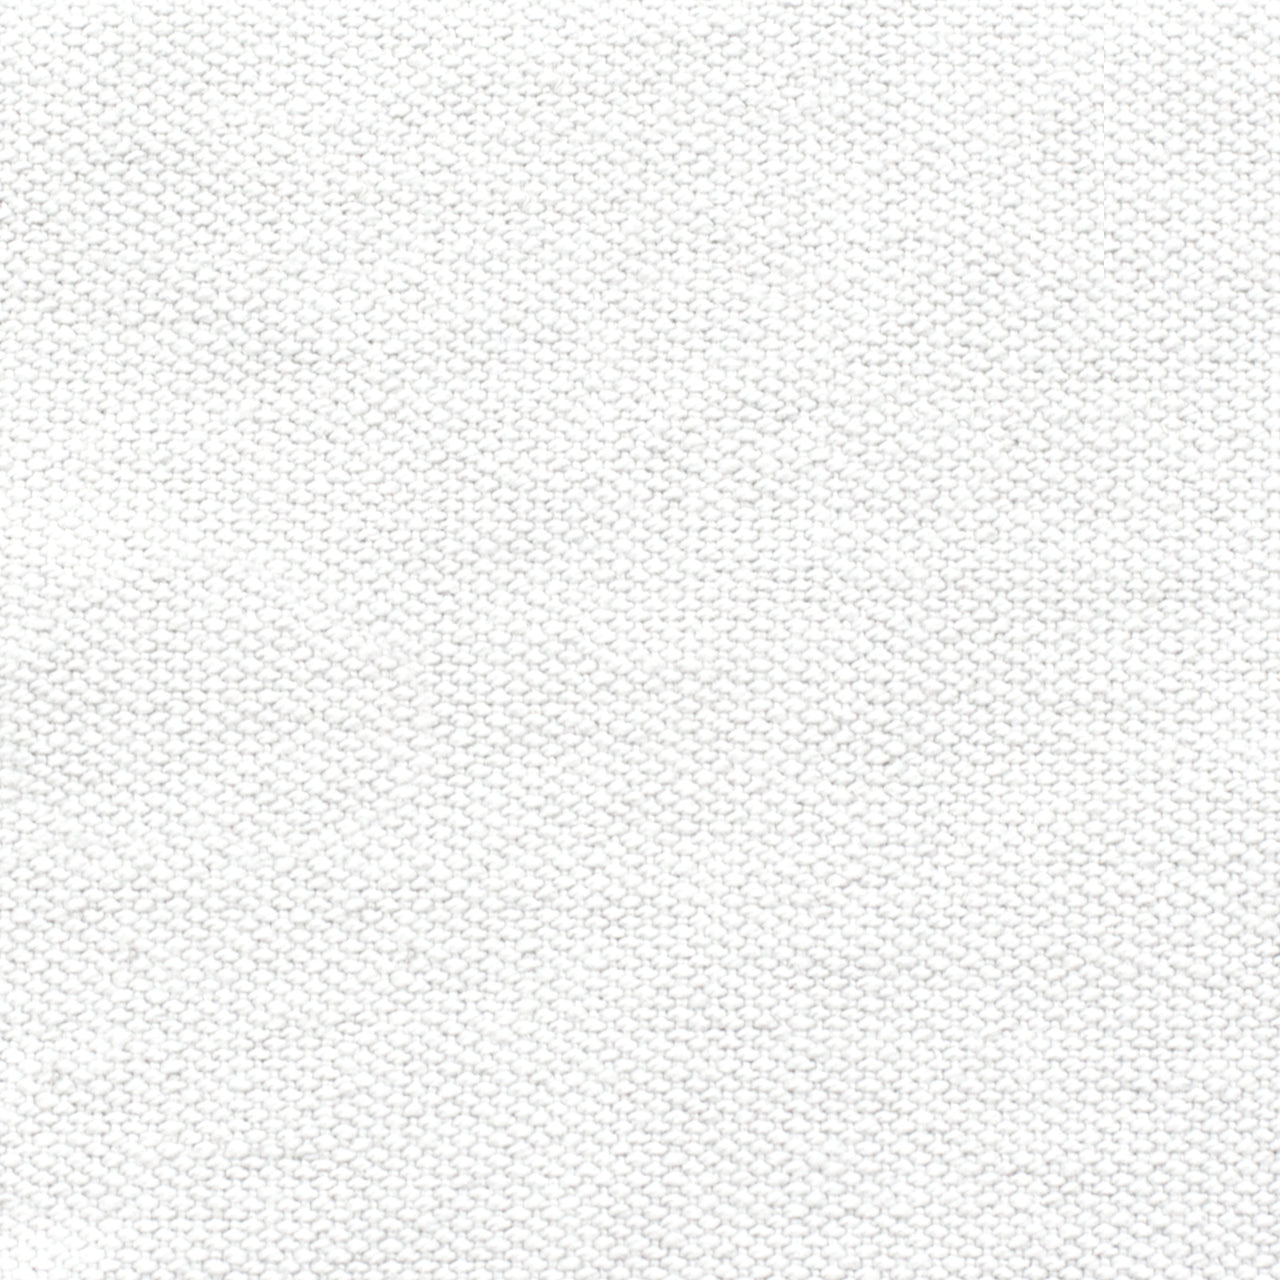 Linen-optic white